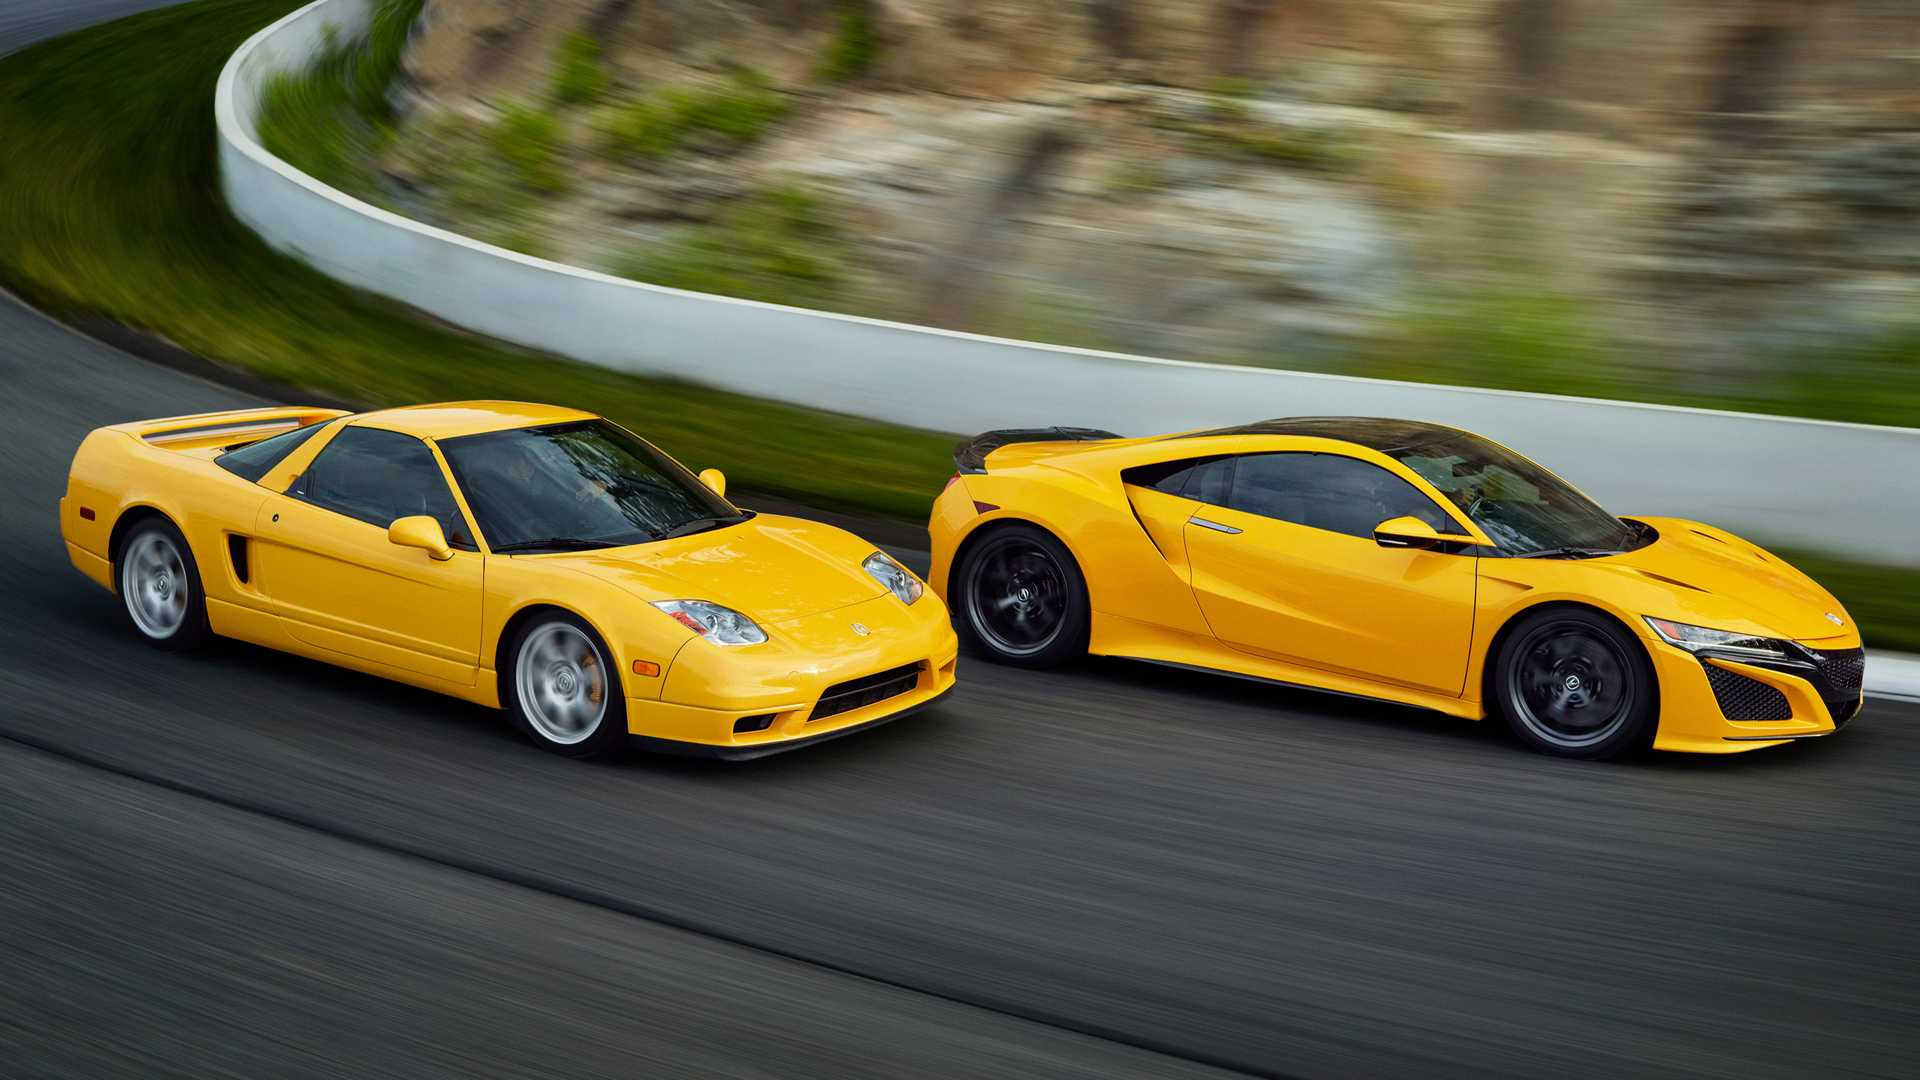 [Image: 2020-acura-nsx-indy-yellow-pearl-and-ori...yellow.jpg]